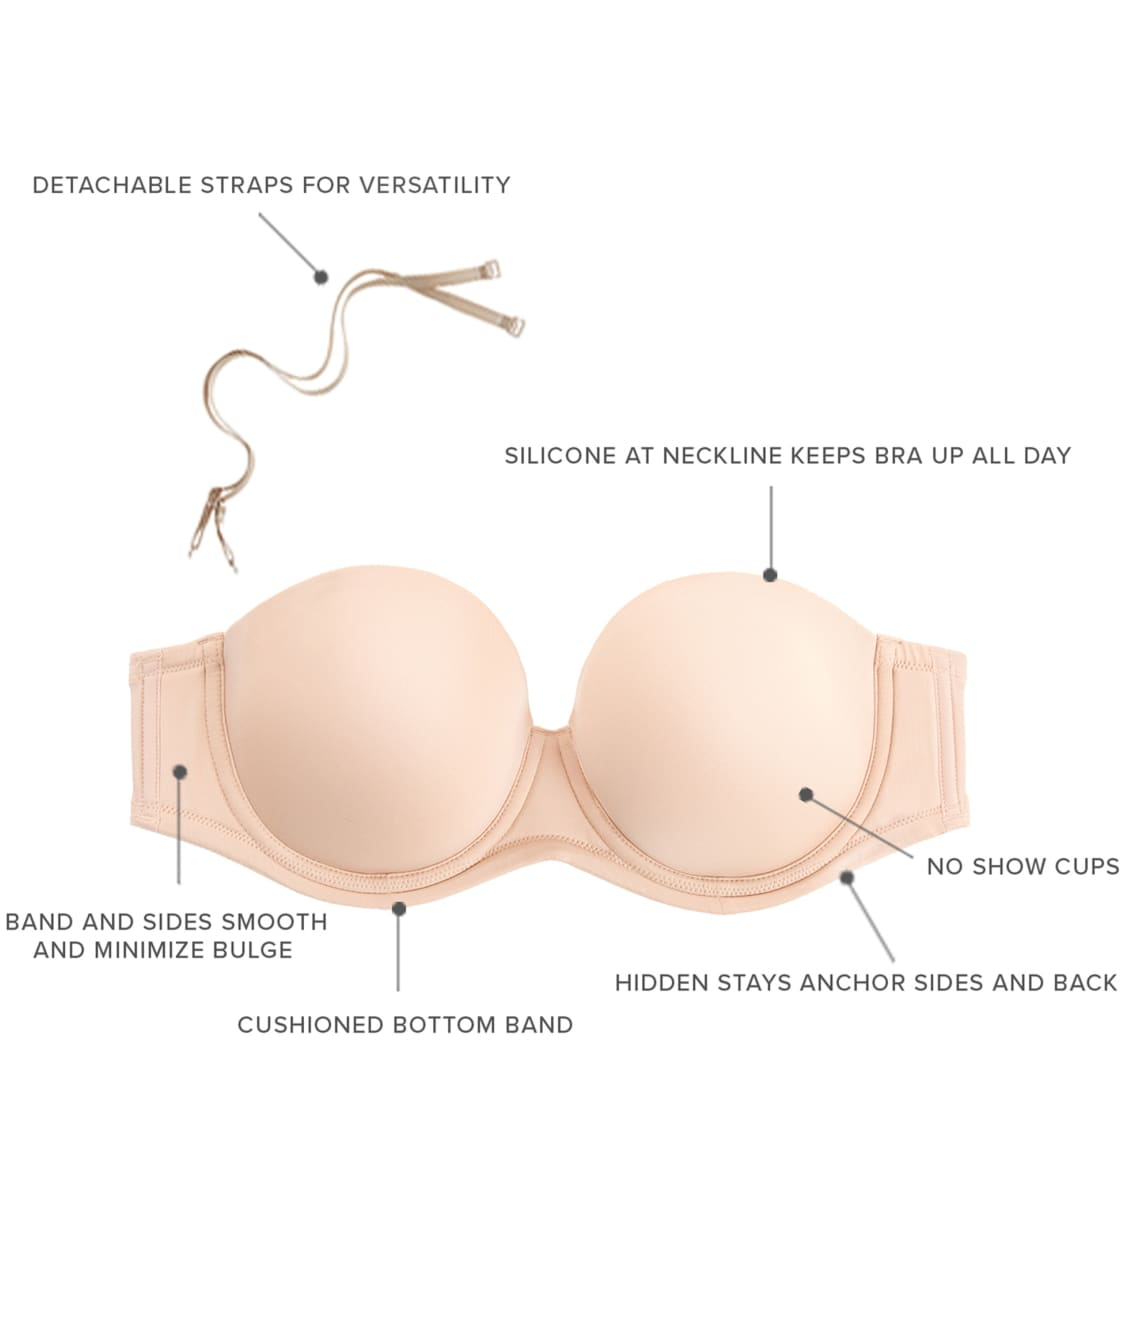 7ef88f36a93 See Red Carpet Strapless Bra in Details